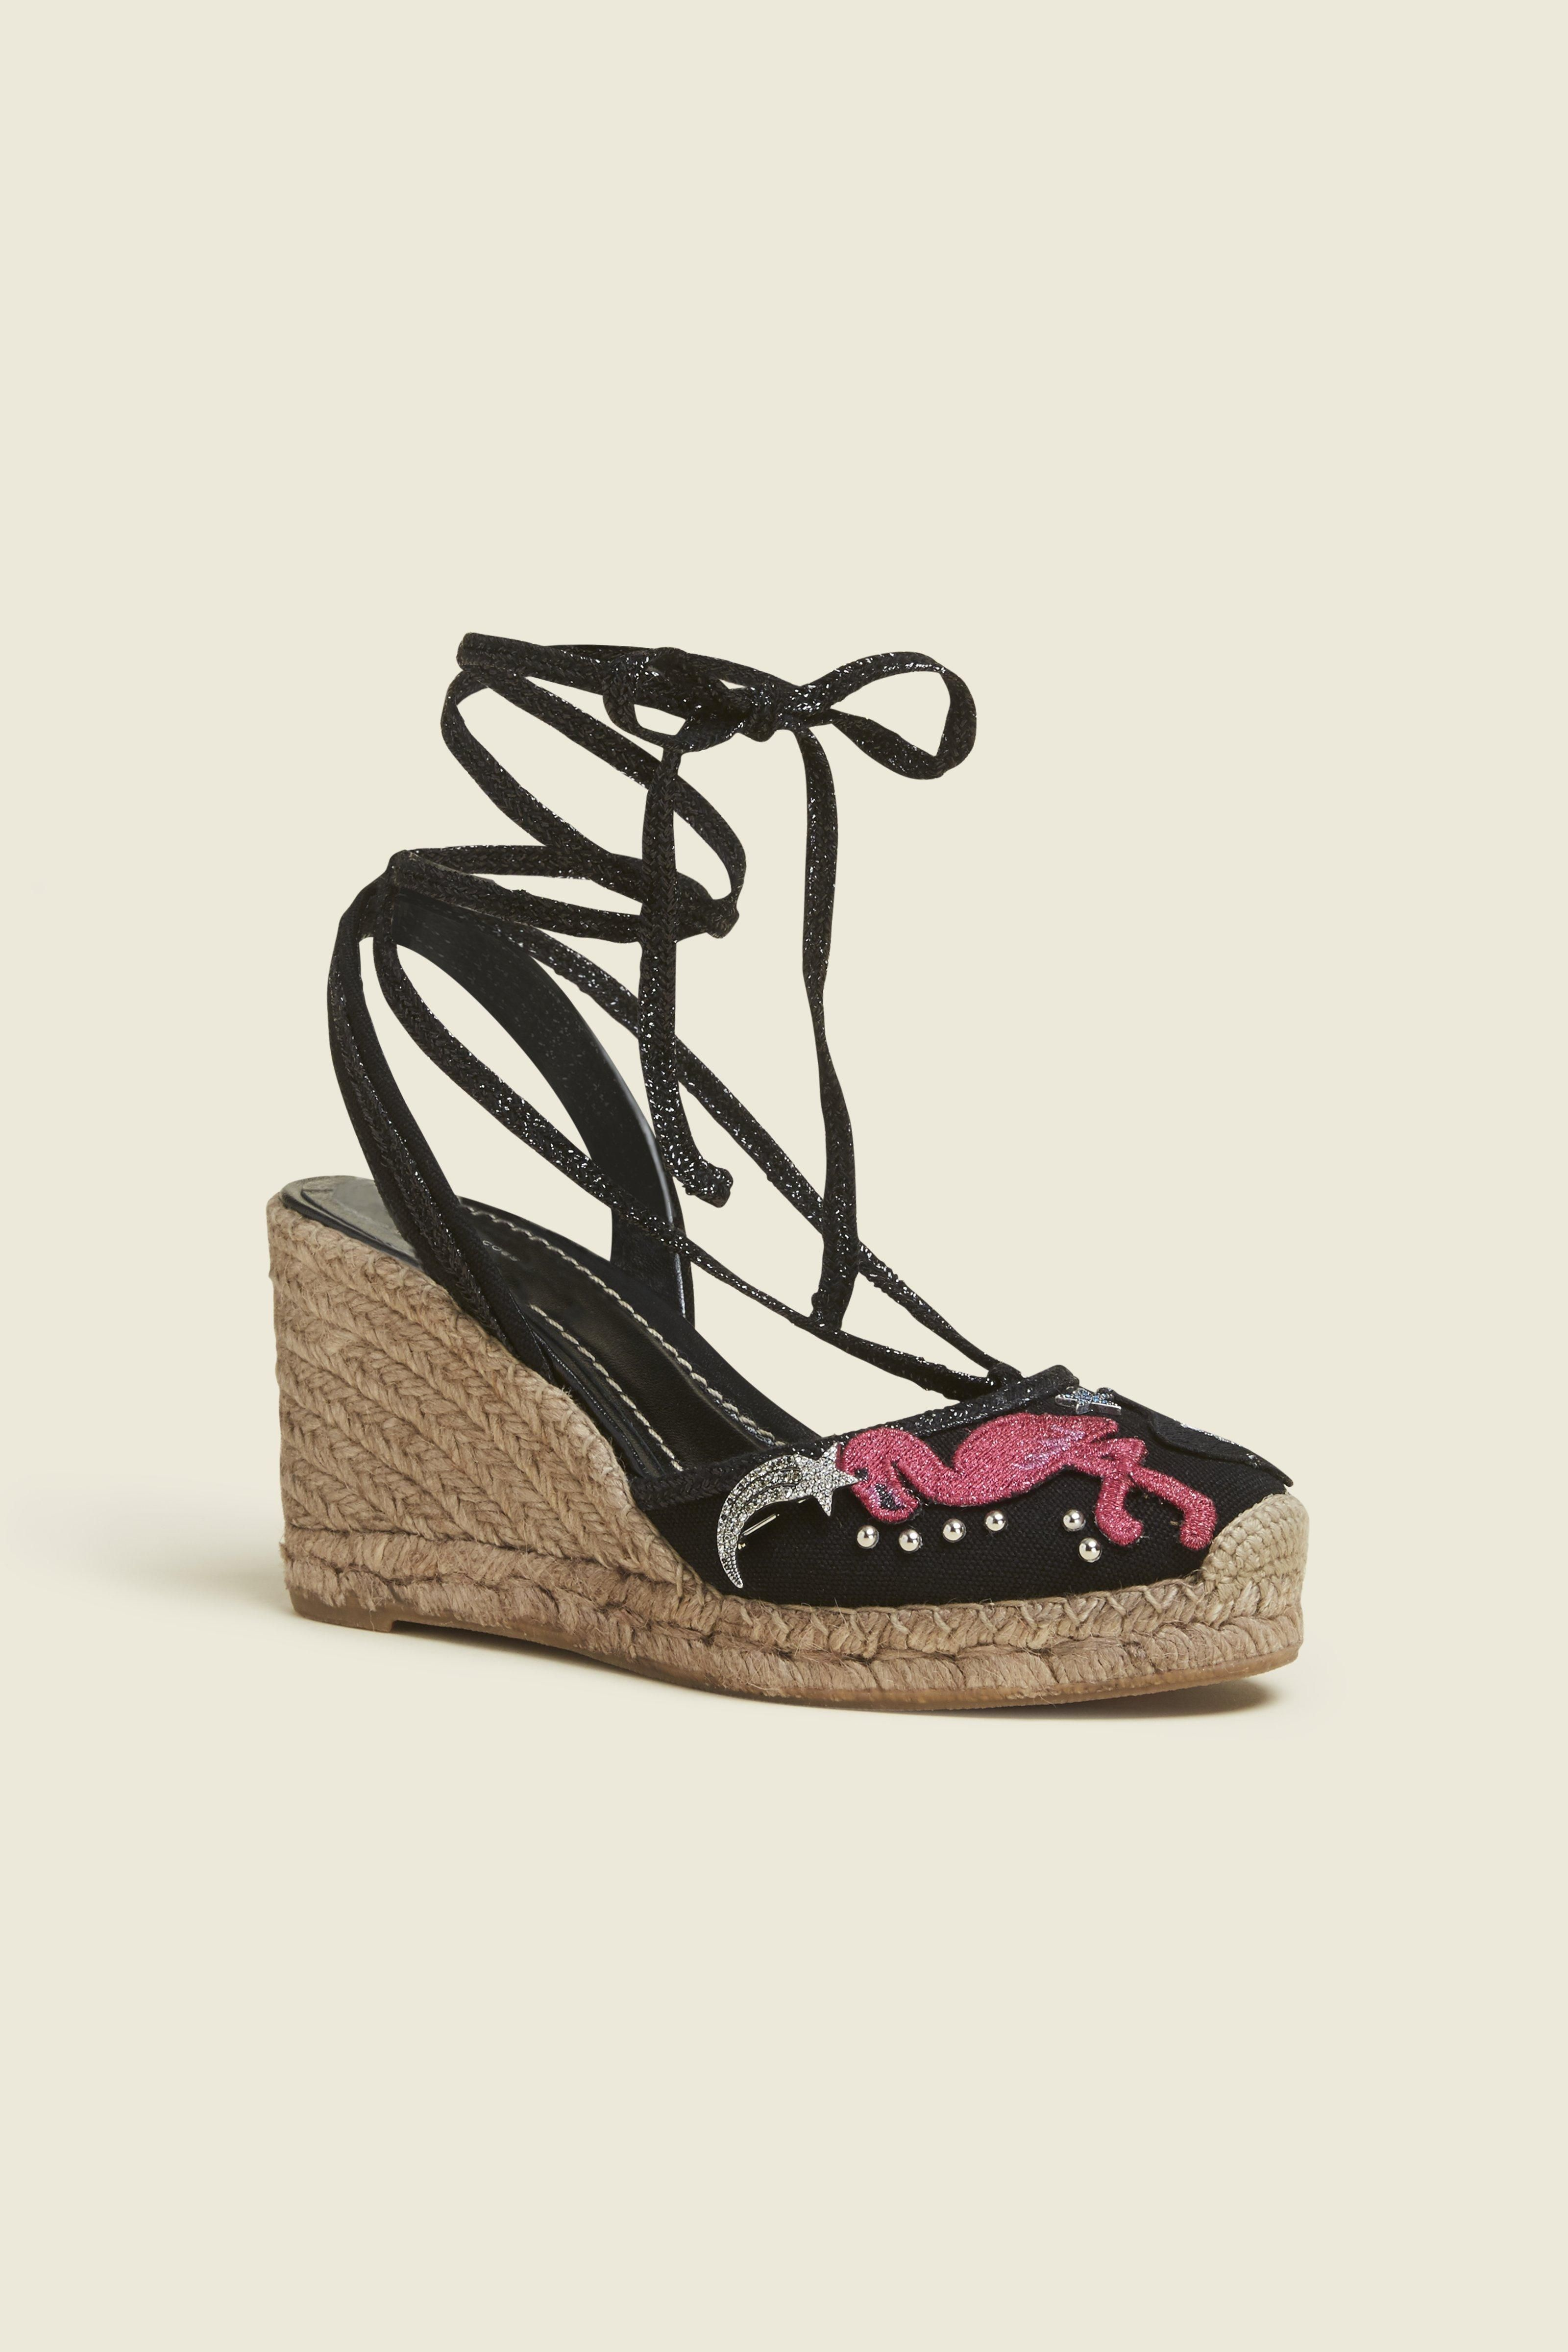 MARC JACOBS Nathalie Wedge Espadrille. #marcjacobs #shoes #